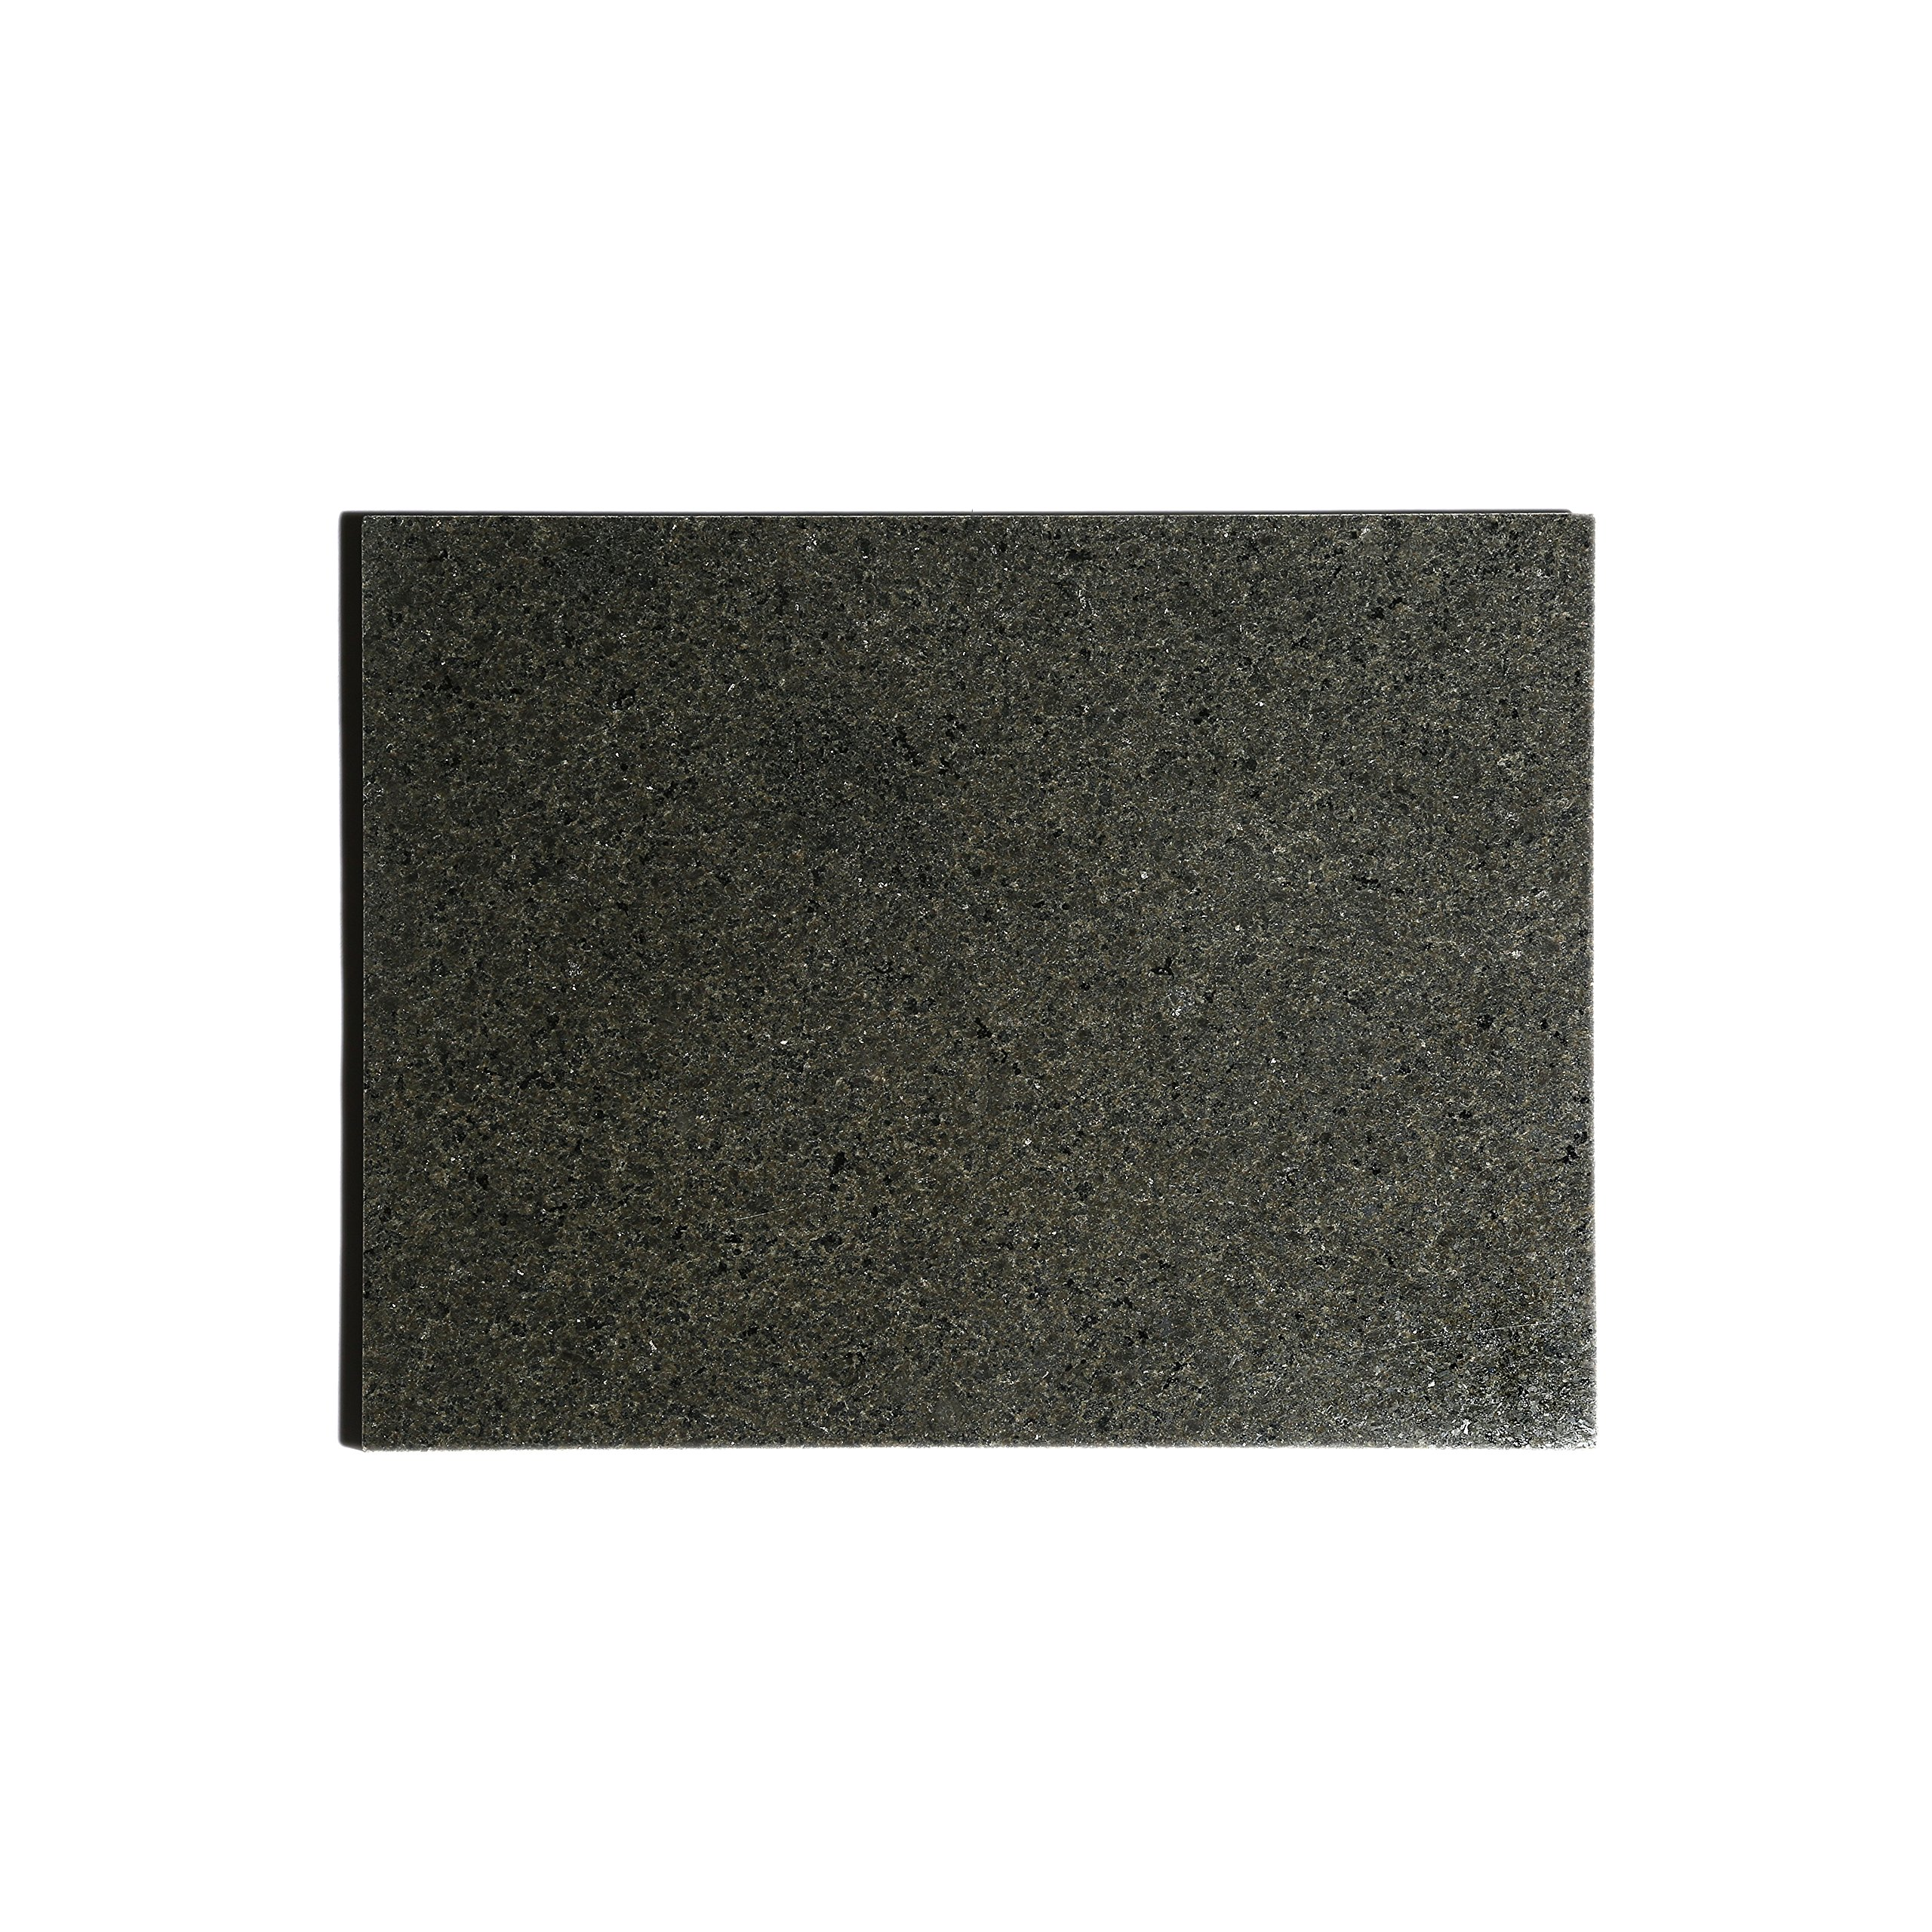 Kota Japan Premium Non-Stick Natural Black Granite Stone Pastry Cutting Board Slab 12'' X 16'' with No-Slip Rubber Feet for Stability and to Protect your Countertops | Easy to Clean | Stays Cool